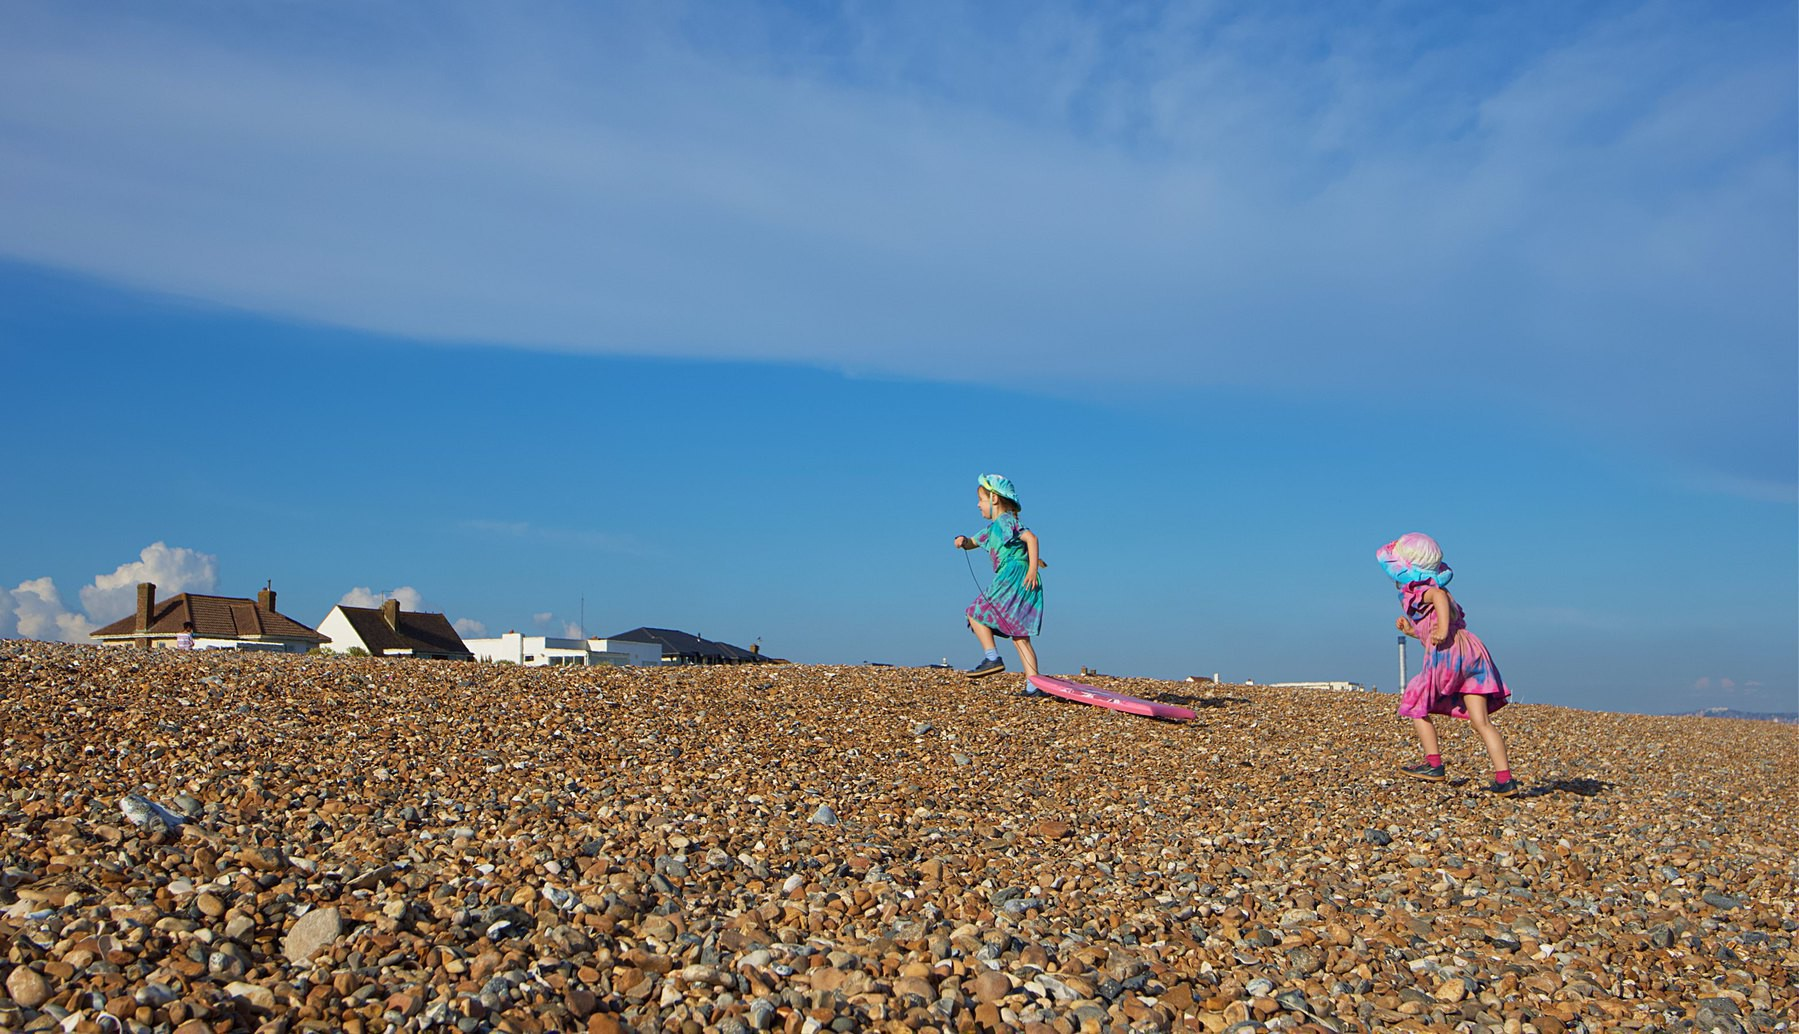 My daughters exploring on the beach.